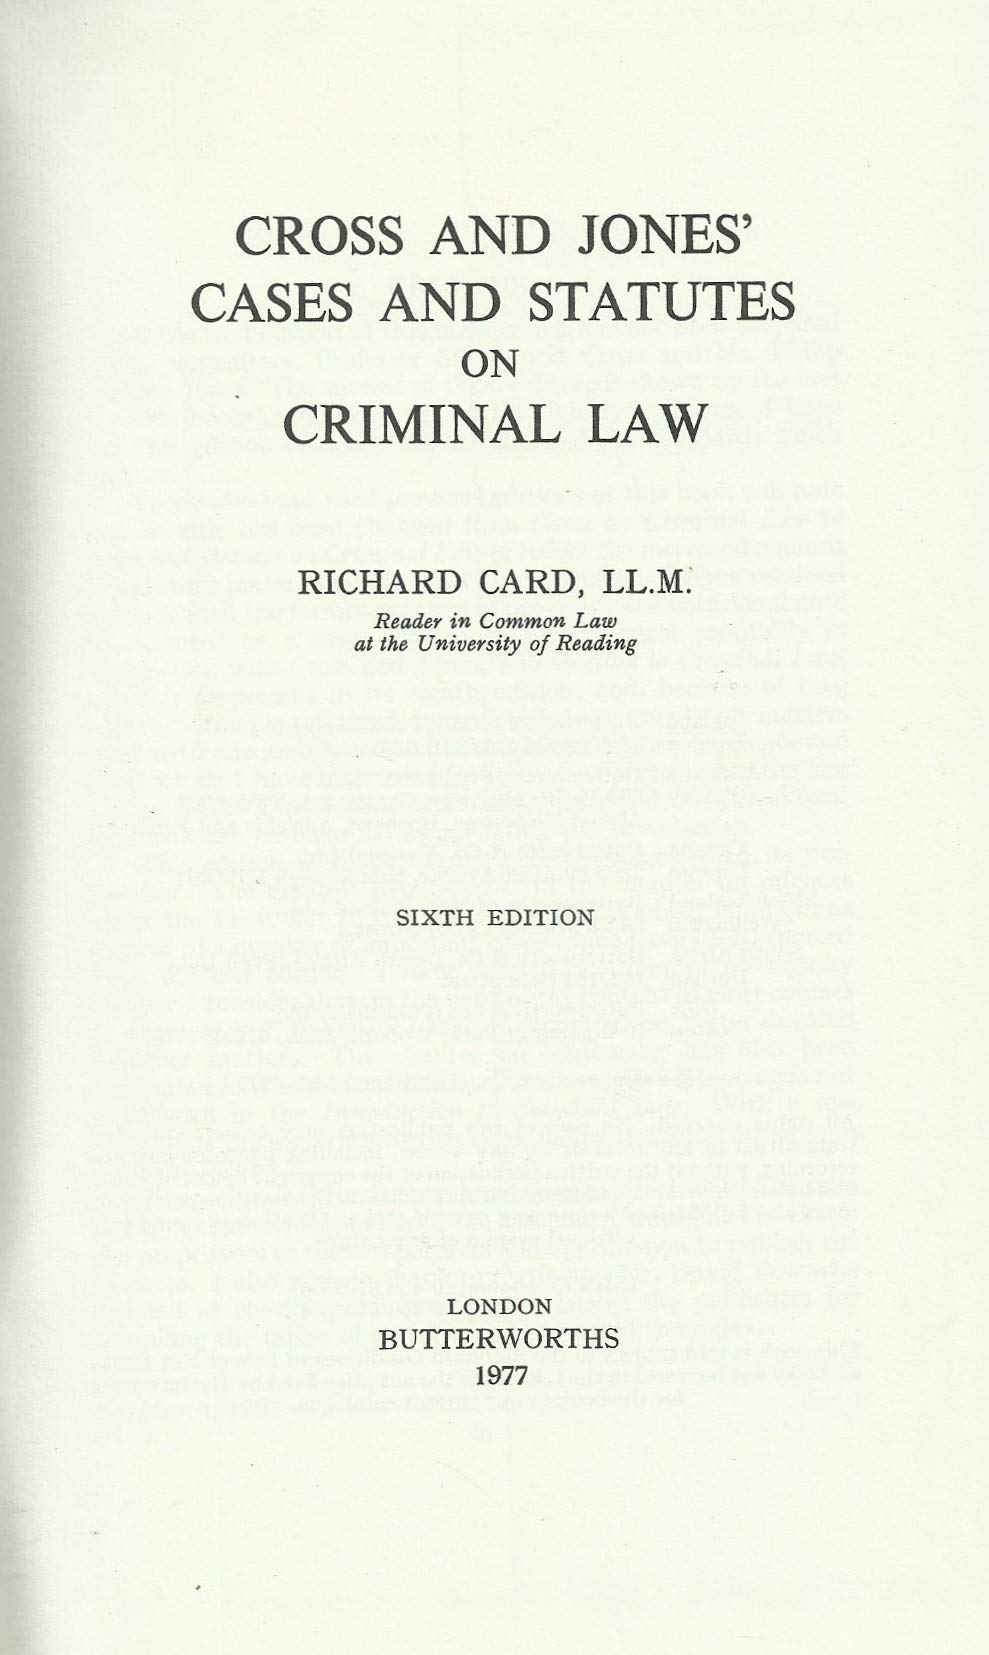 Cases and Statutes on Criminal Law